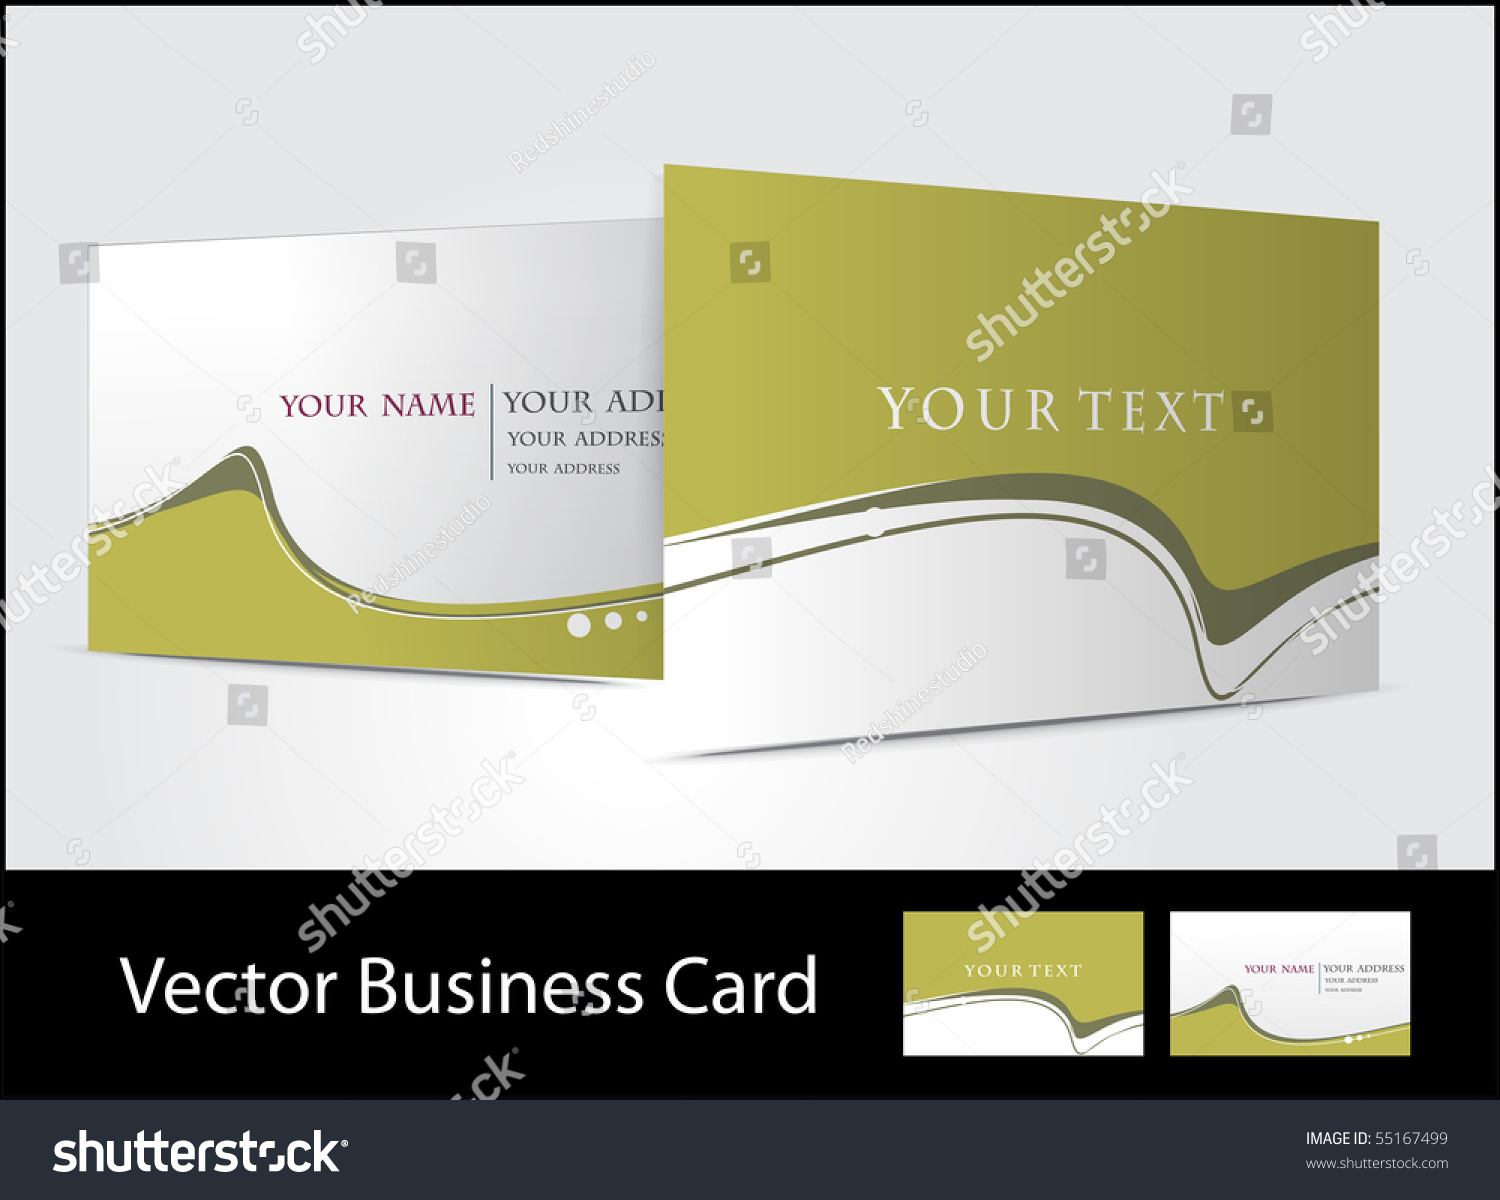 vector business card set more business stock vector  vector business card set for more business card of this type please my gallery